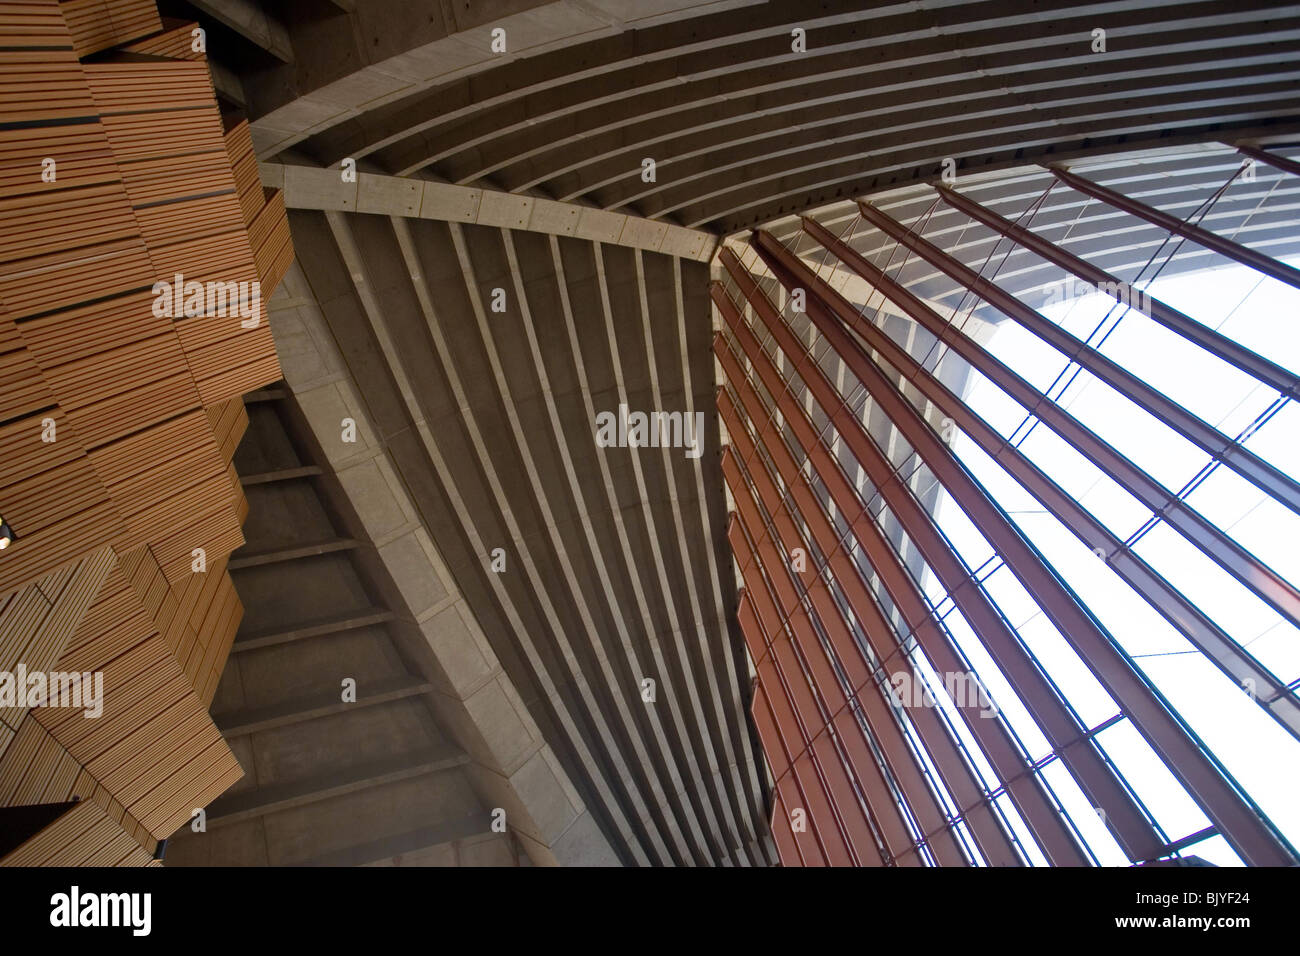 Sydney Opera House Roof And Facade From Inside Stock Photo